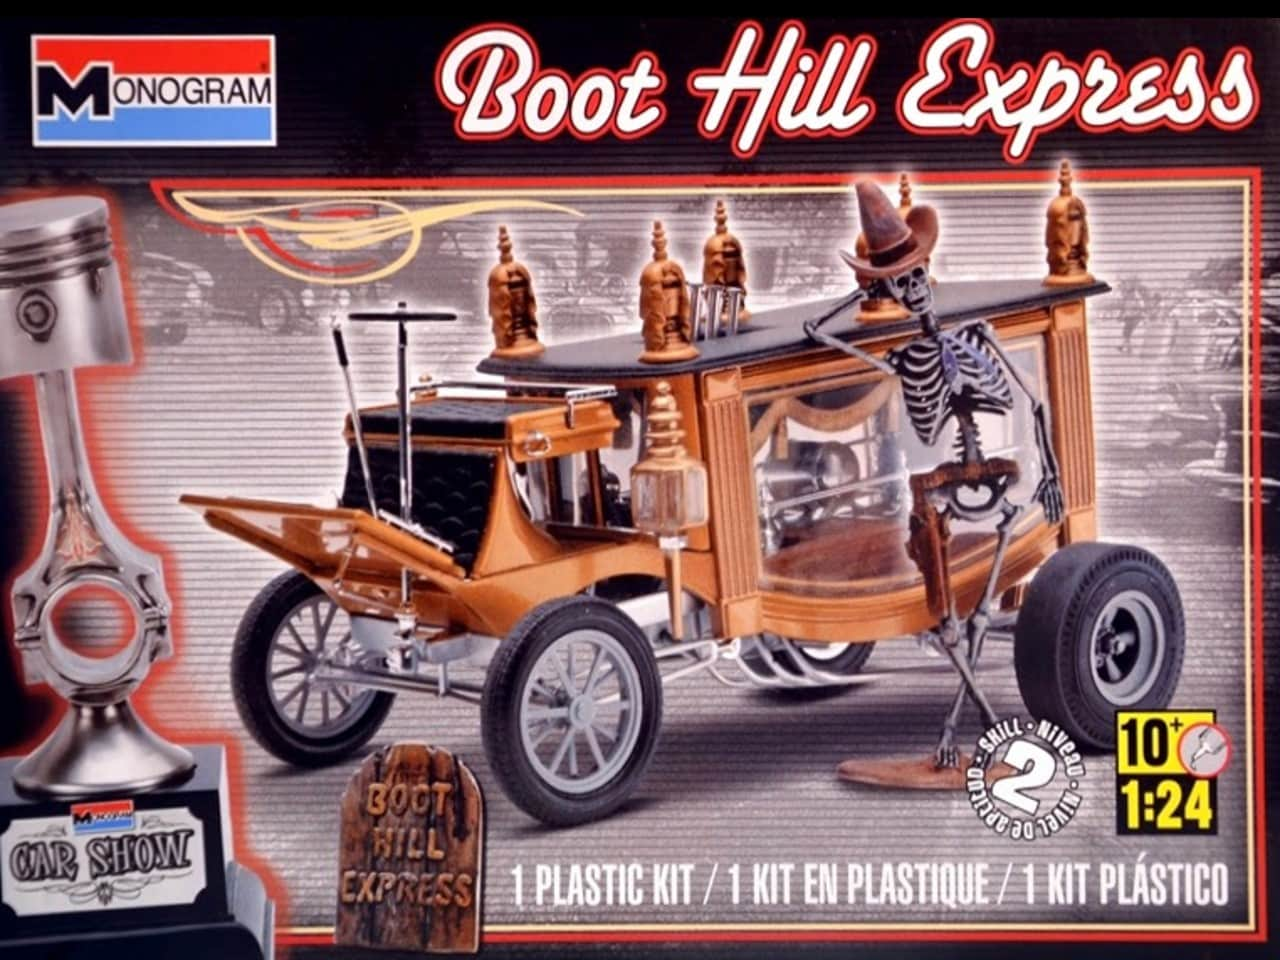 a_boothill-express_033